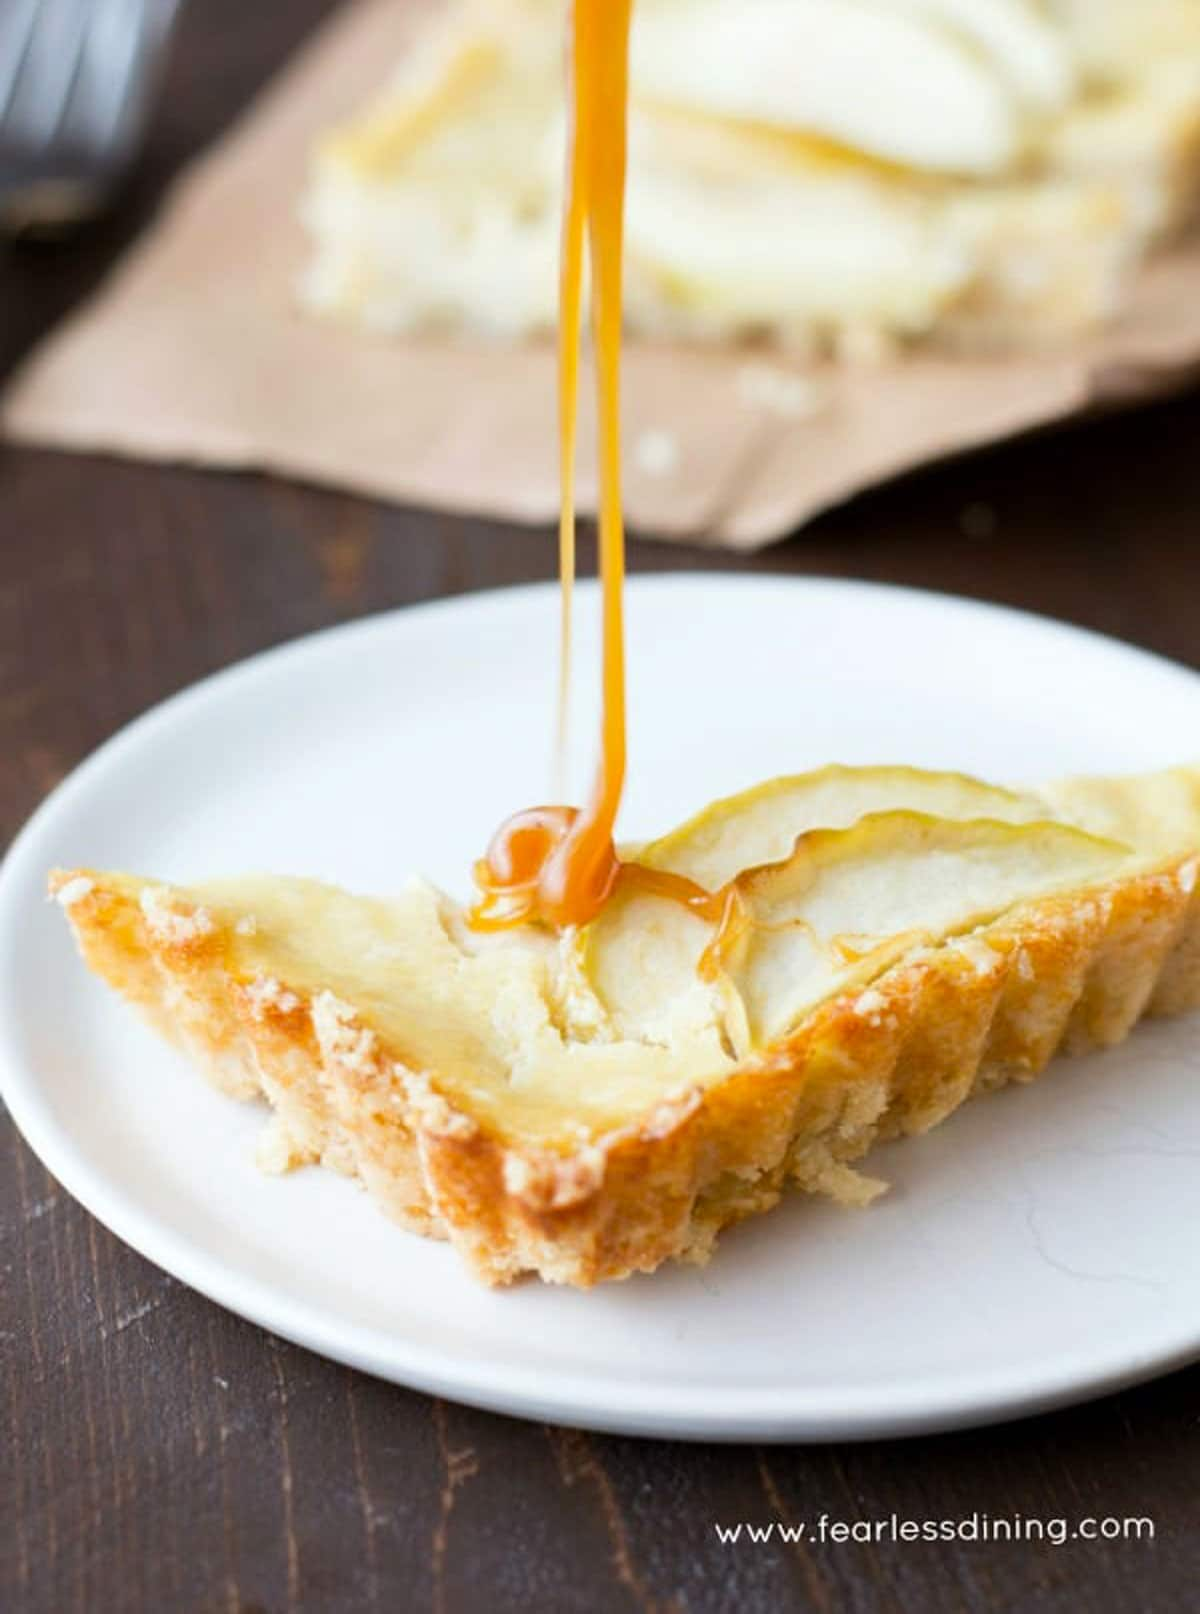 drizzling caramel over a slice of apple tart